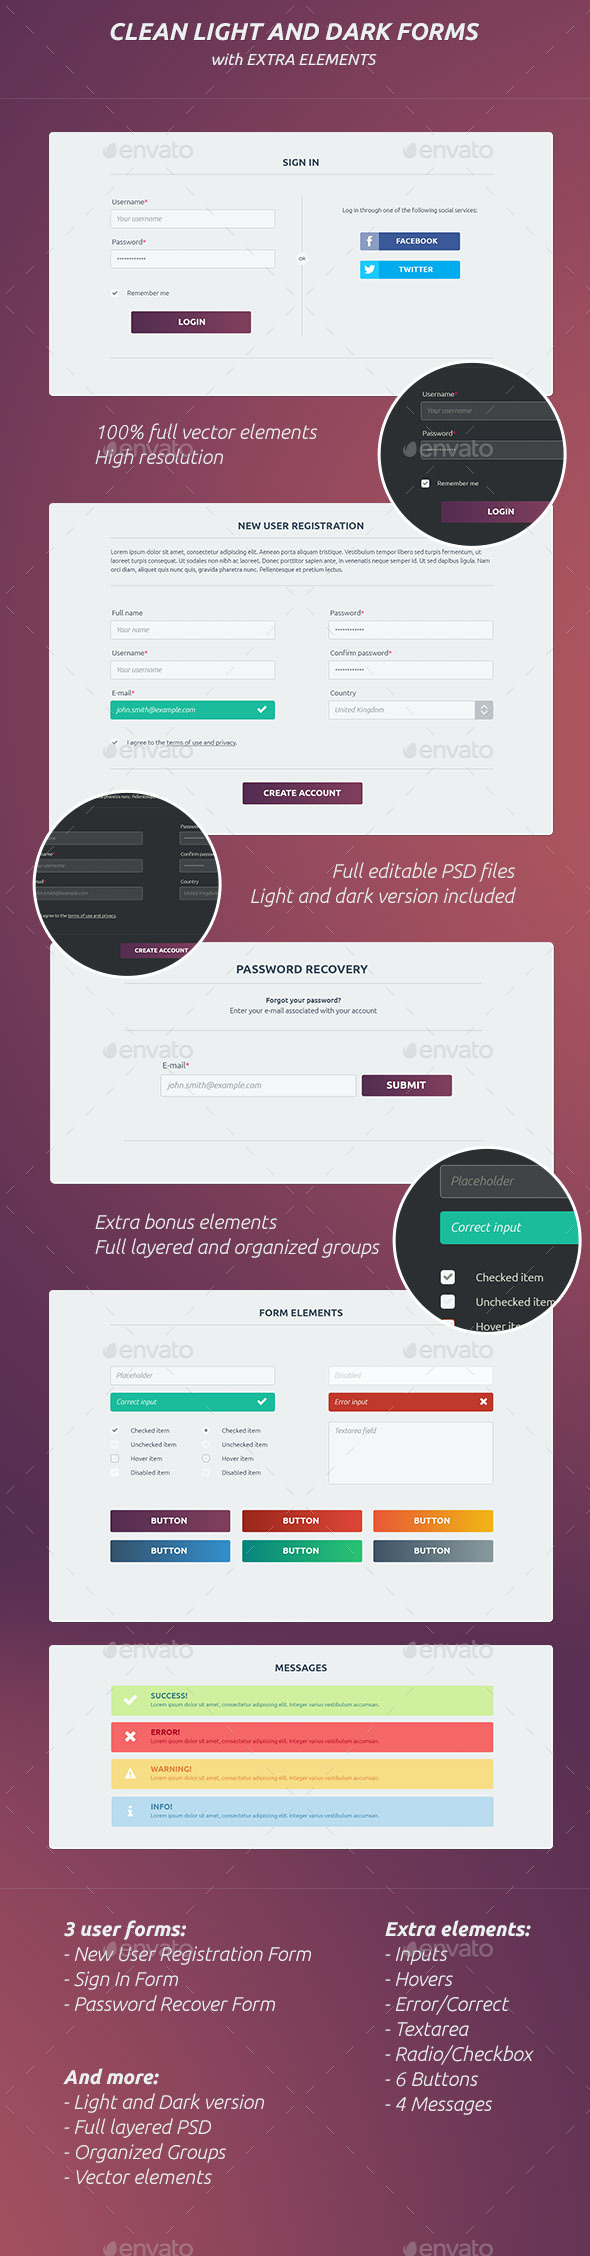 user registration and login graphics designs templates